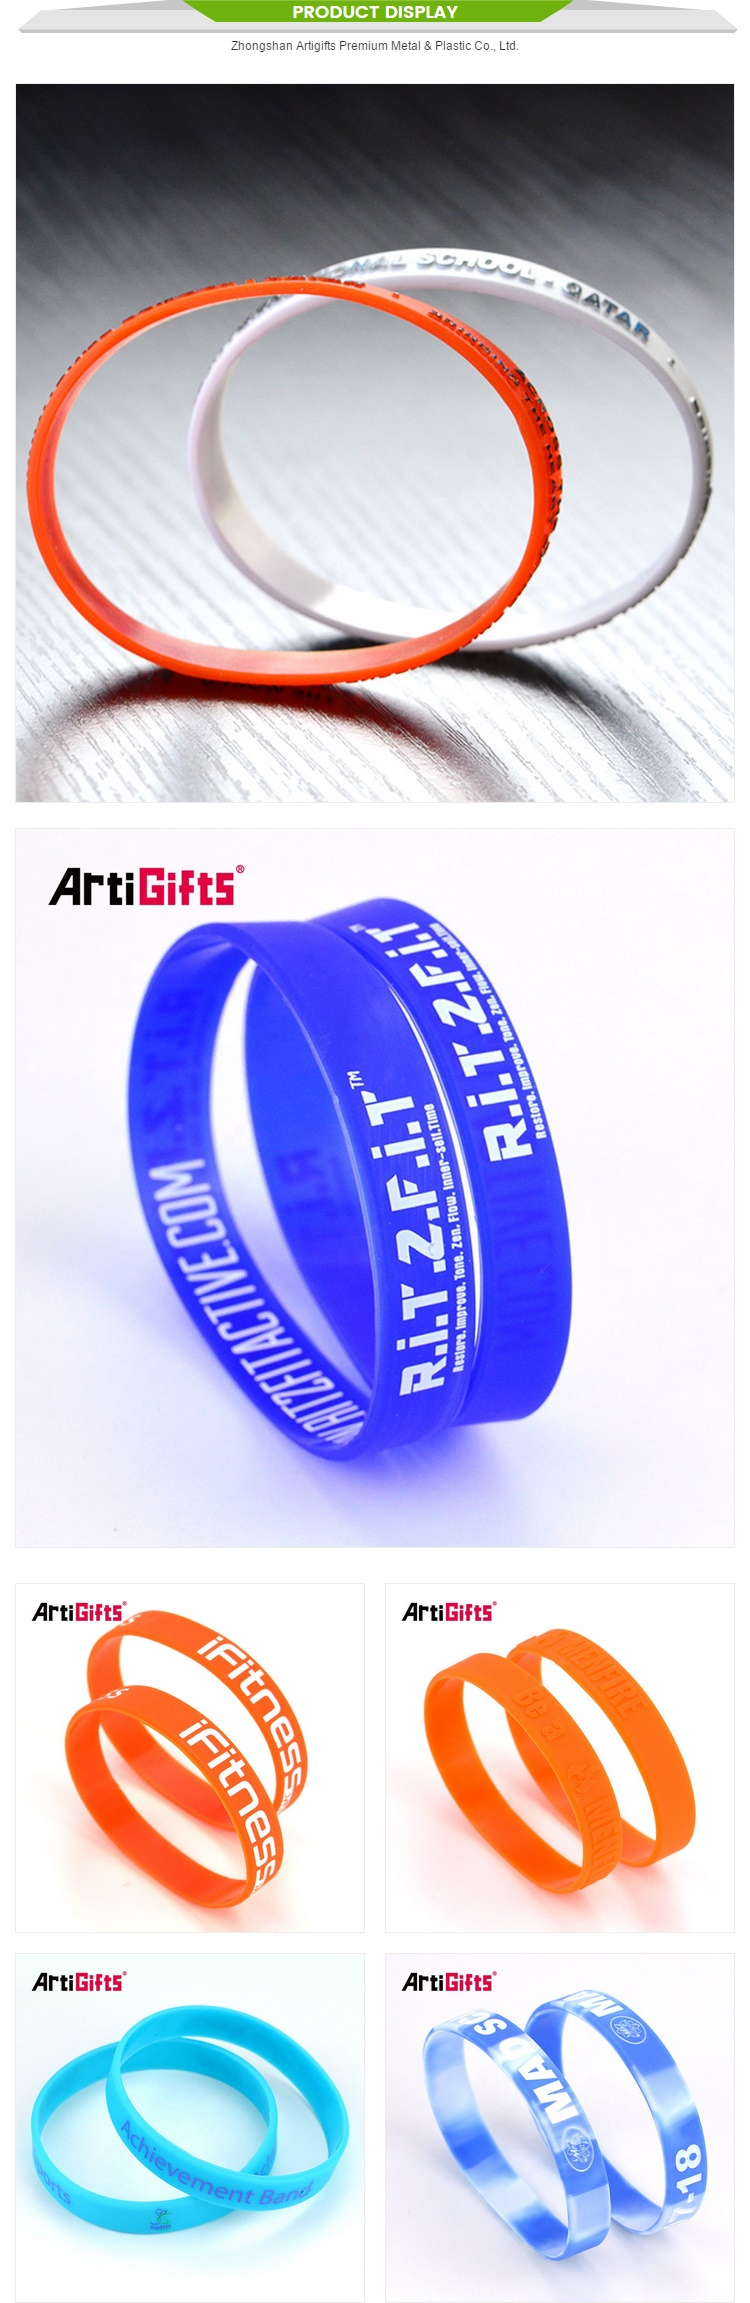 100% Silicon customized vet recommended watch adjustable bracelet wristband silicone wristbands with button